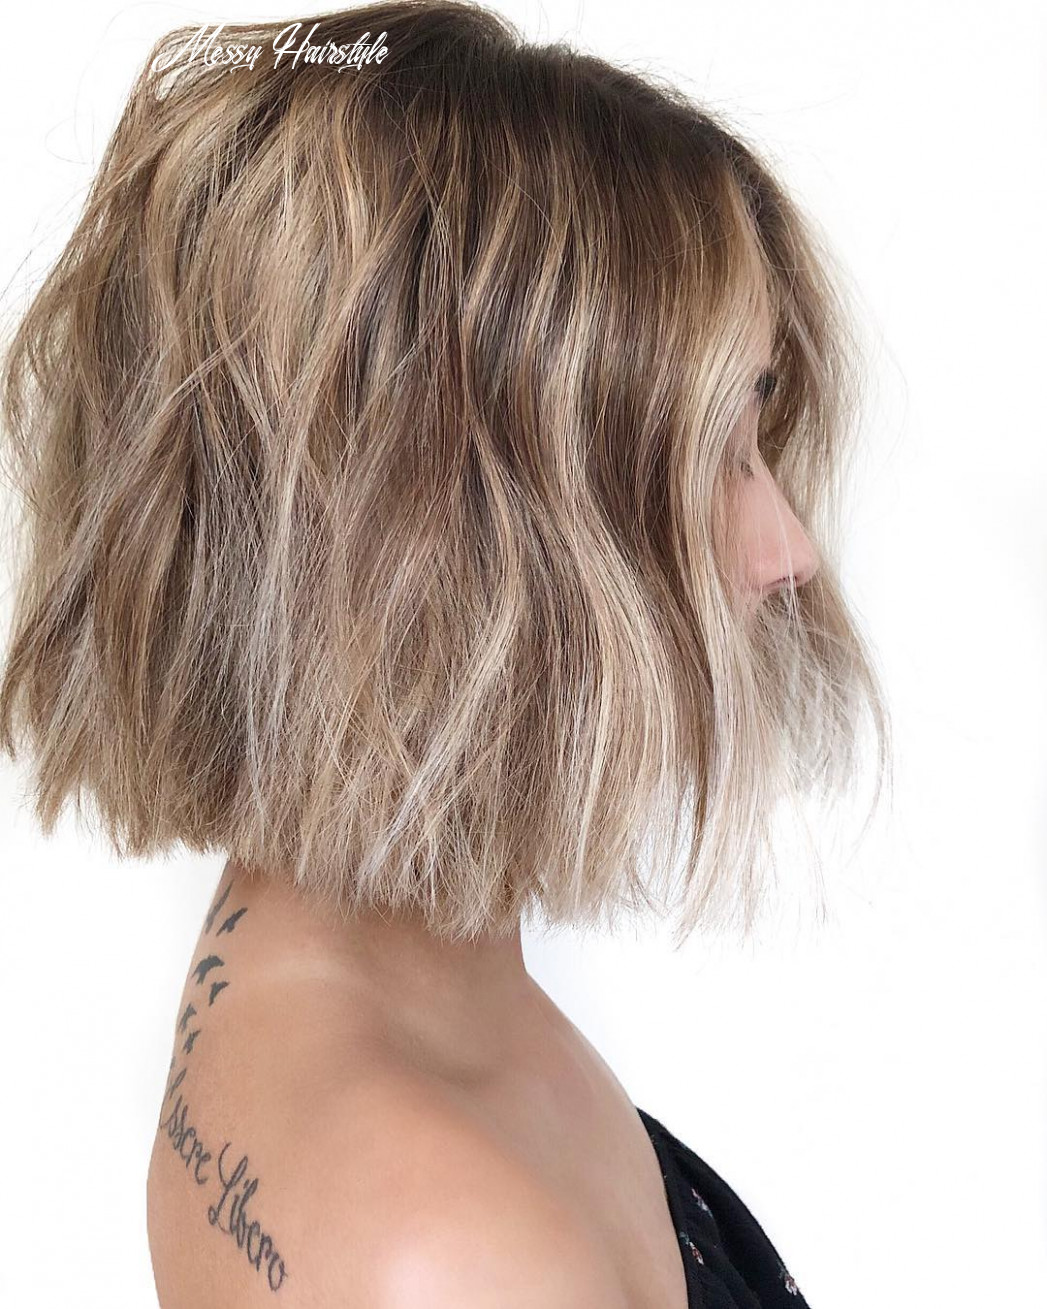 8 Trendy Messy Bob Hairstyles and Haircuts, 8 Female Short ...